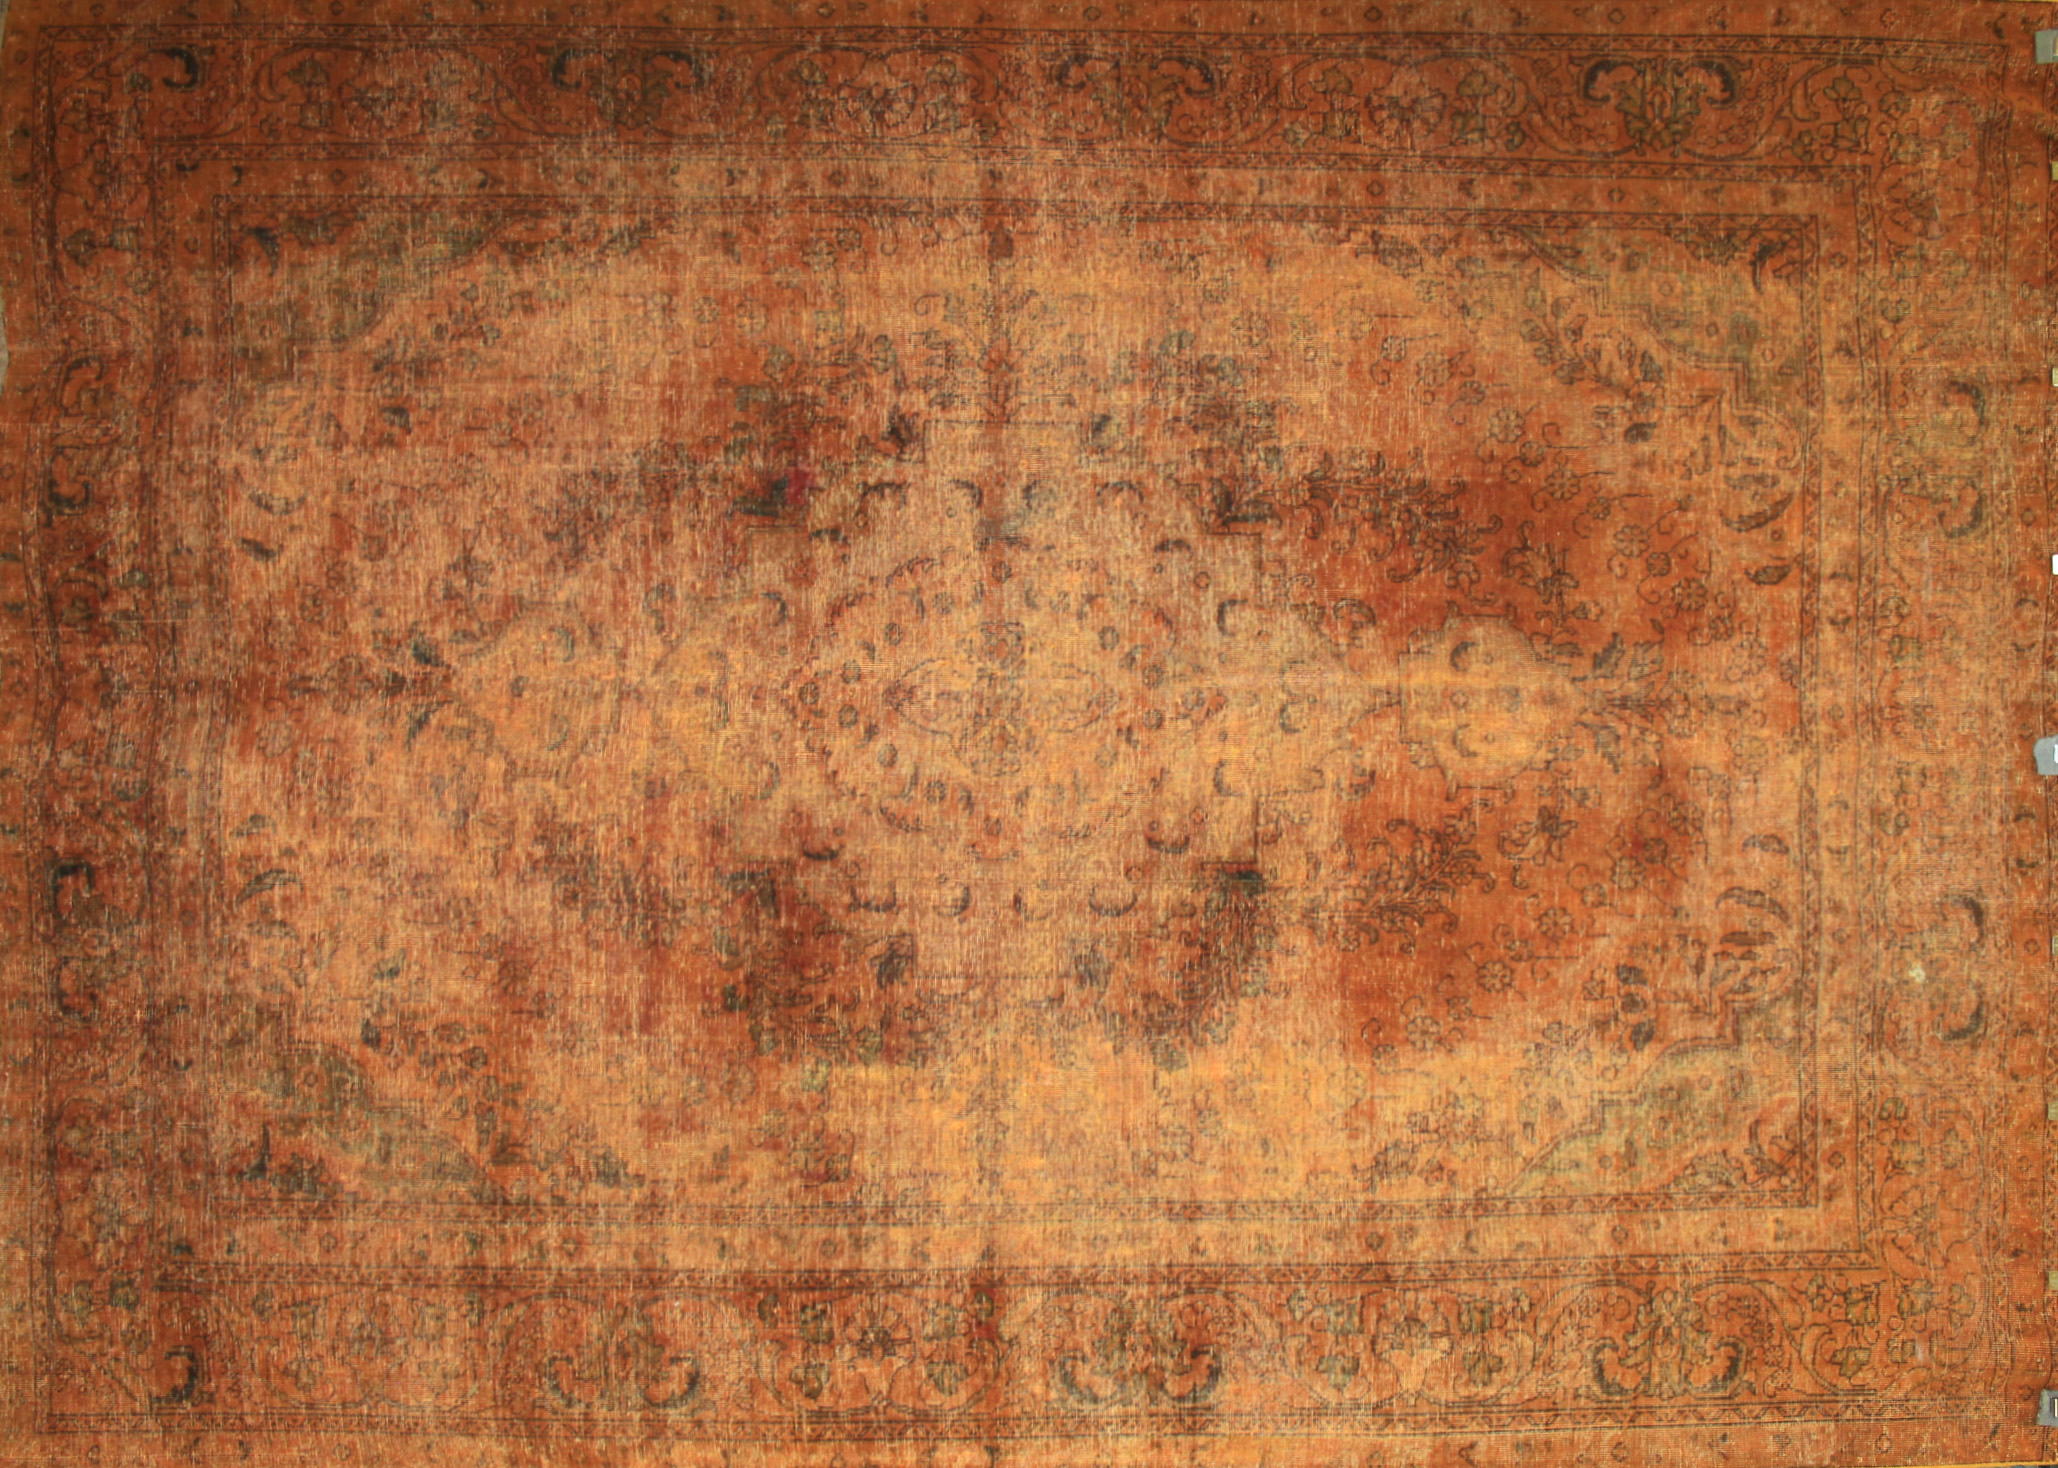 9x12 Vintage Hand Knotted Wool Area Rug - MR18422